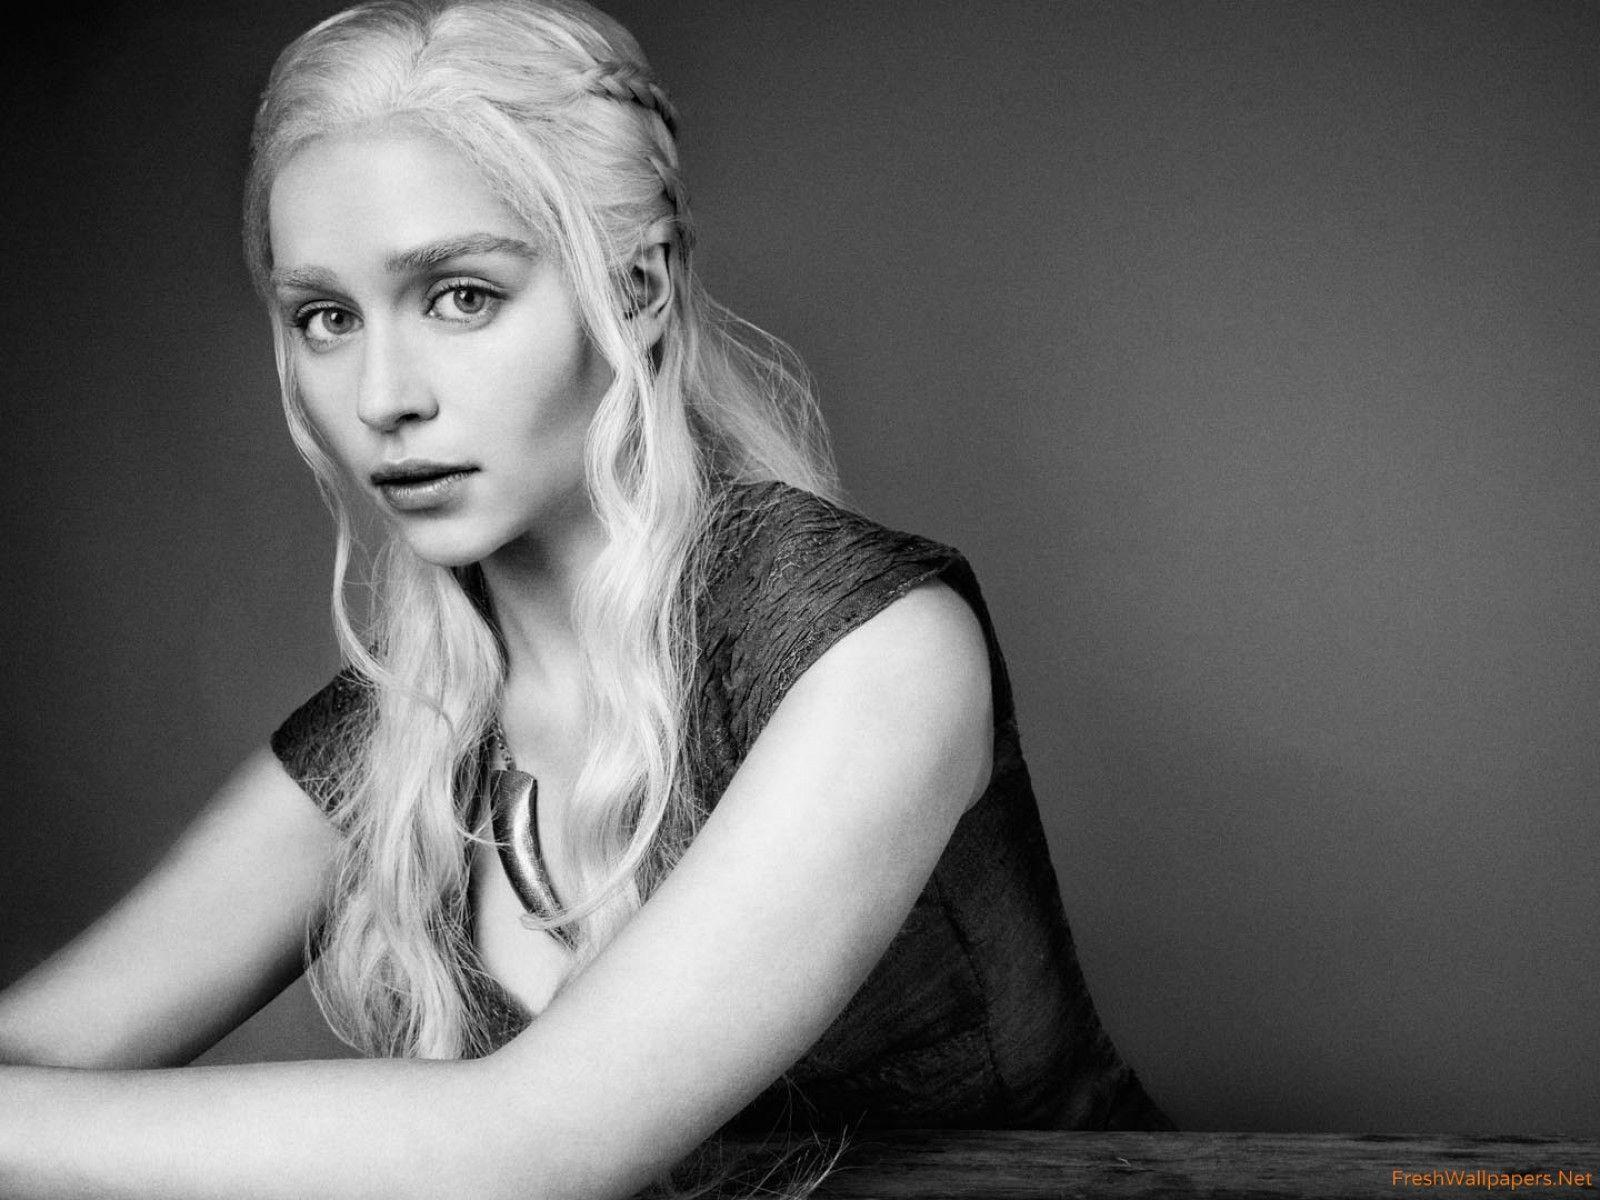 Emilia Clarke Game Of Thrones Wallpaper: Emilia Clarke Game Of Thrones Wallpapers